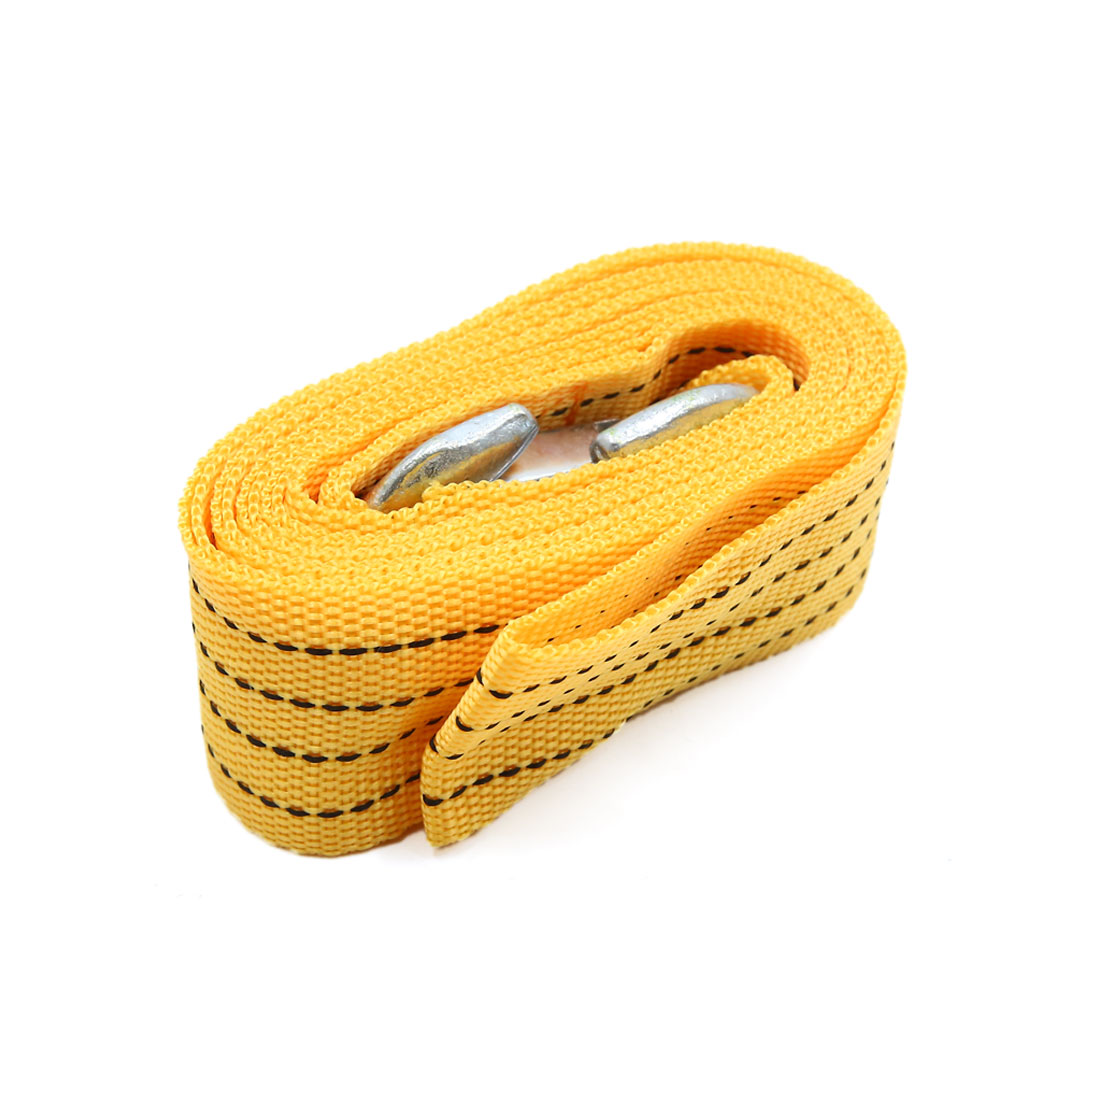 3 Ton 9.8Ft Length Yellow Car Tow Cable Emergency Towing Strap Rope w 2 Hooks